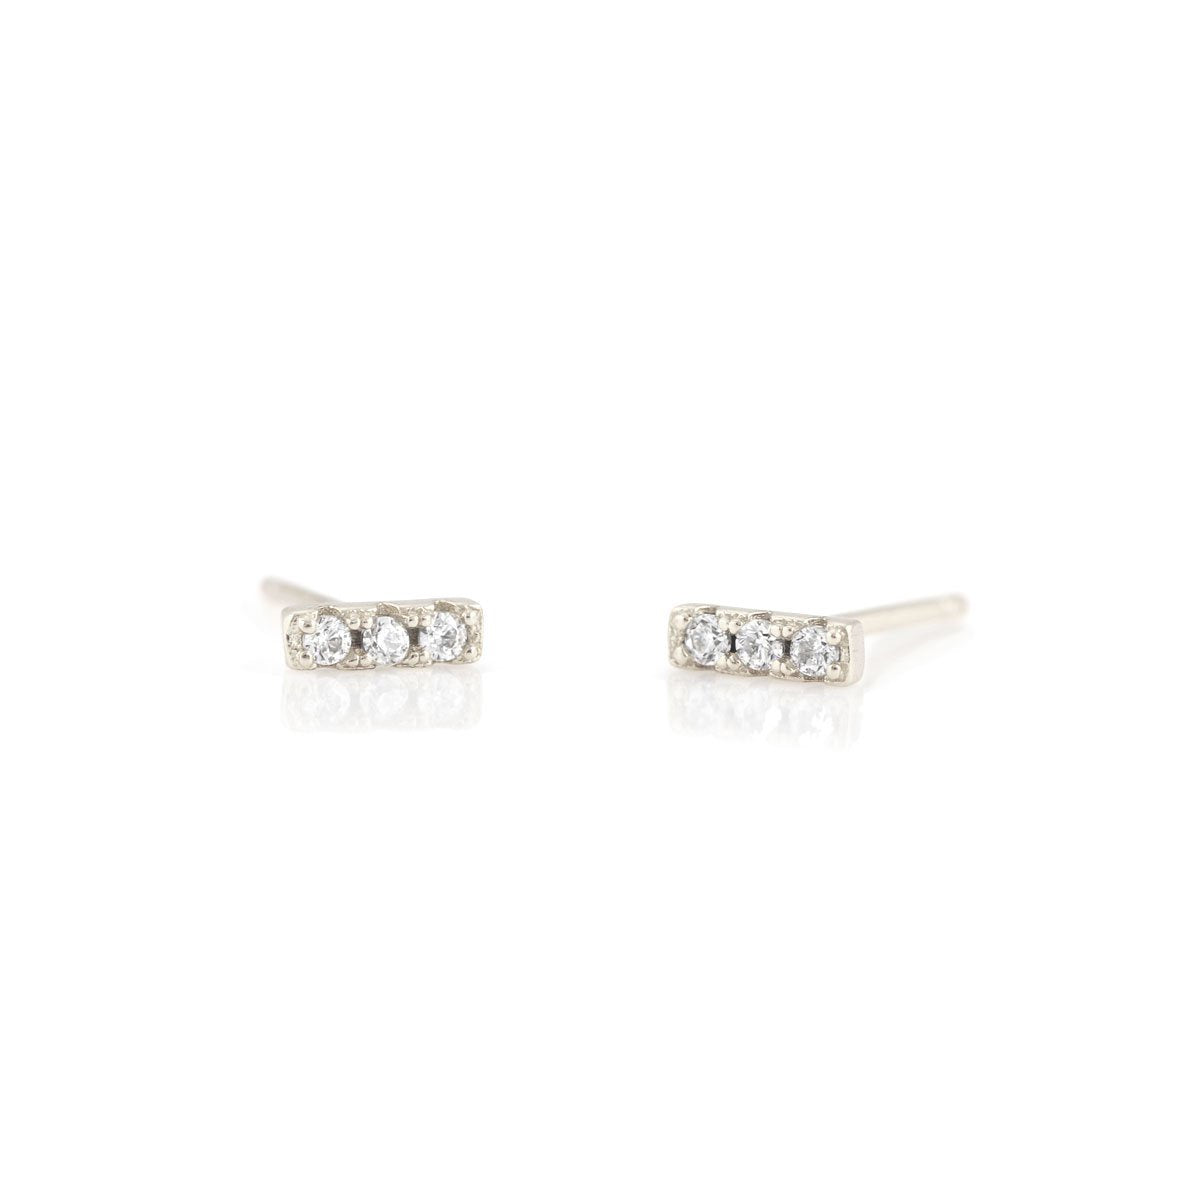 KRIS NATIONS - BAR DASH PAVE STUDS IN SILVER